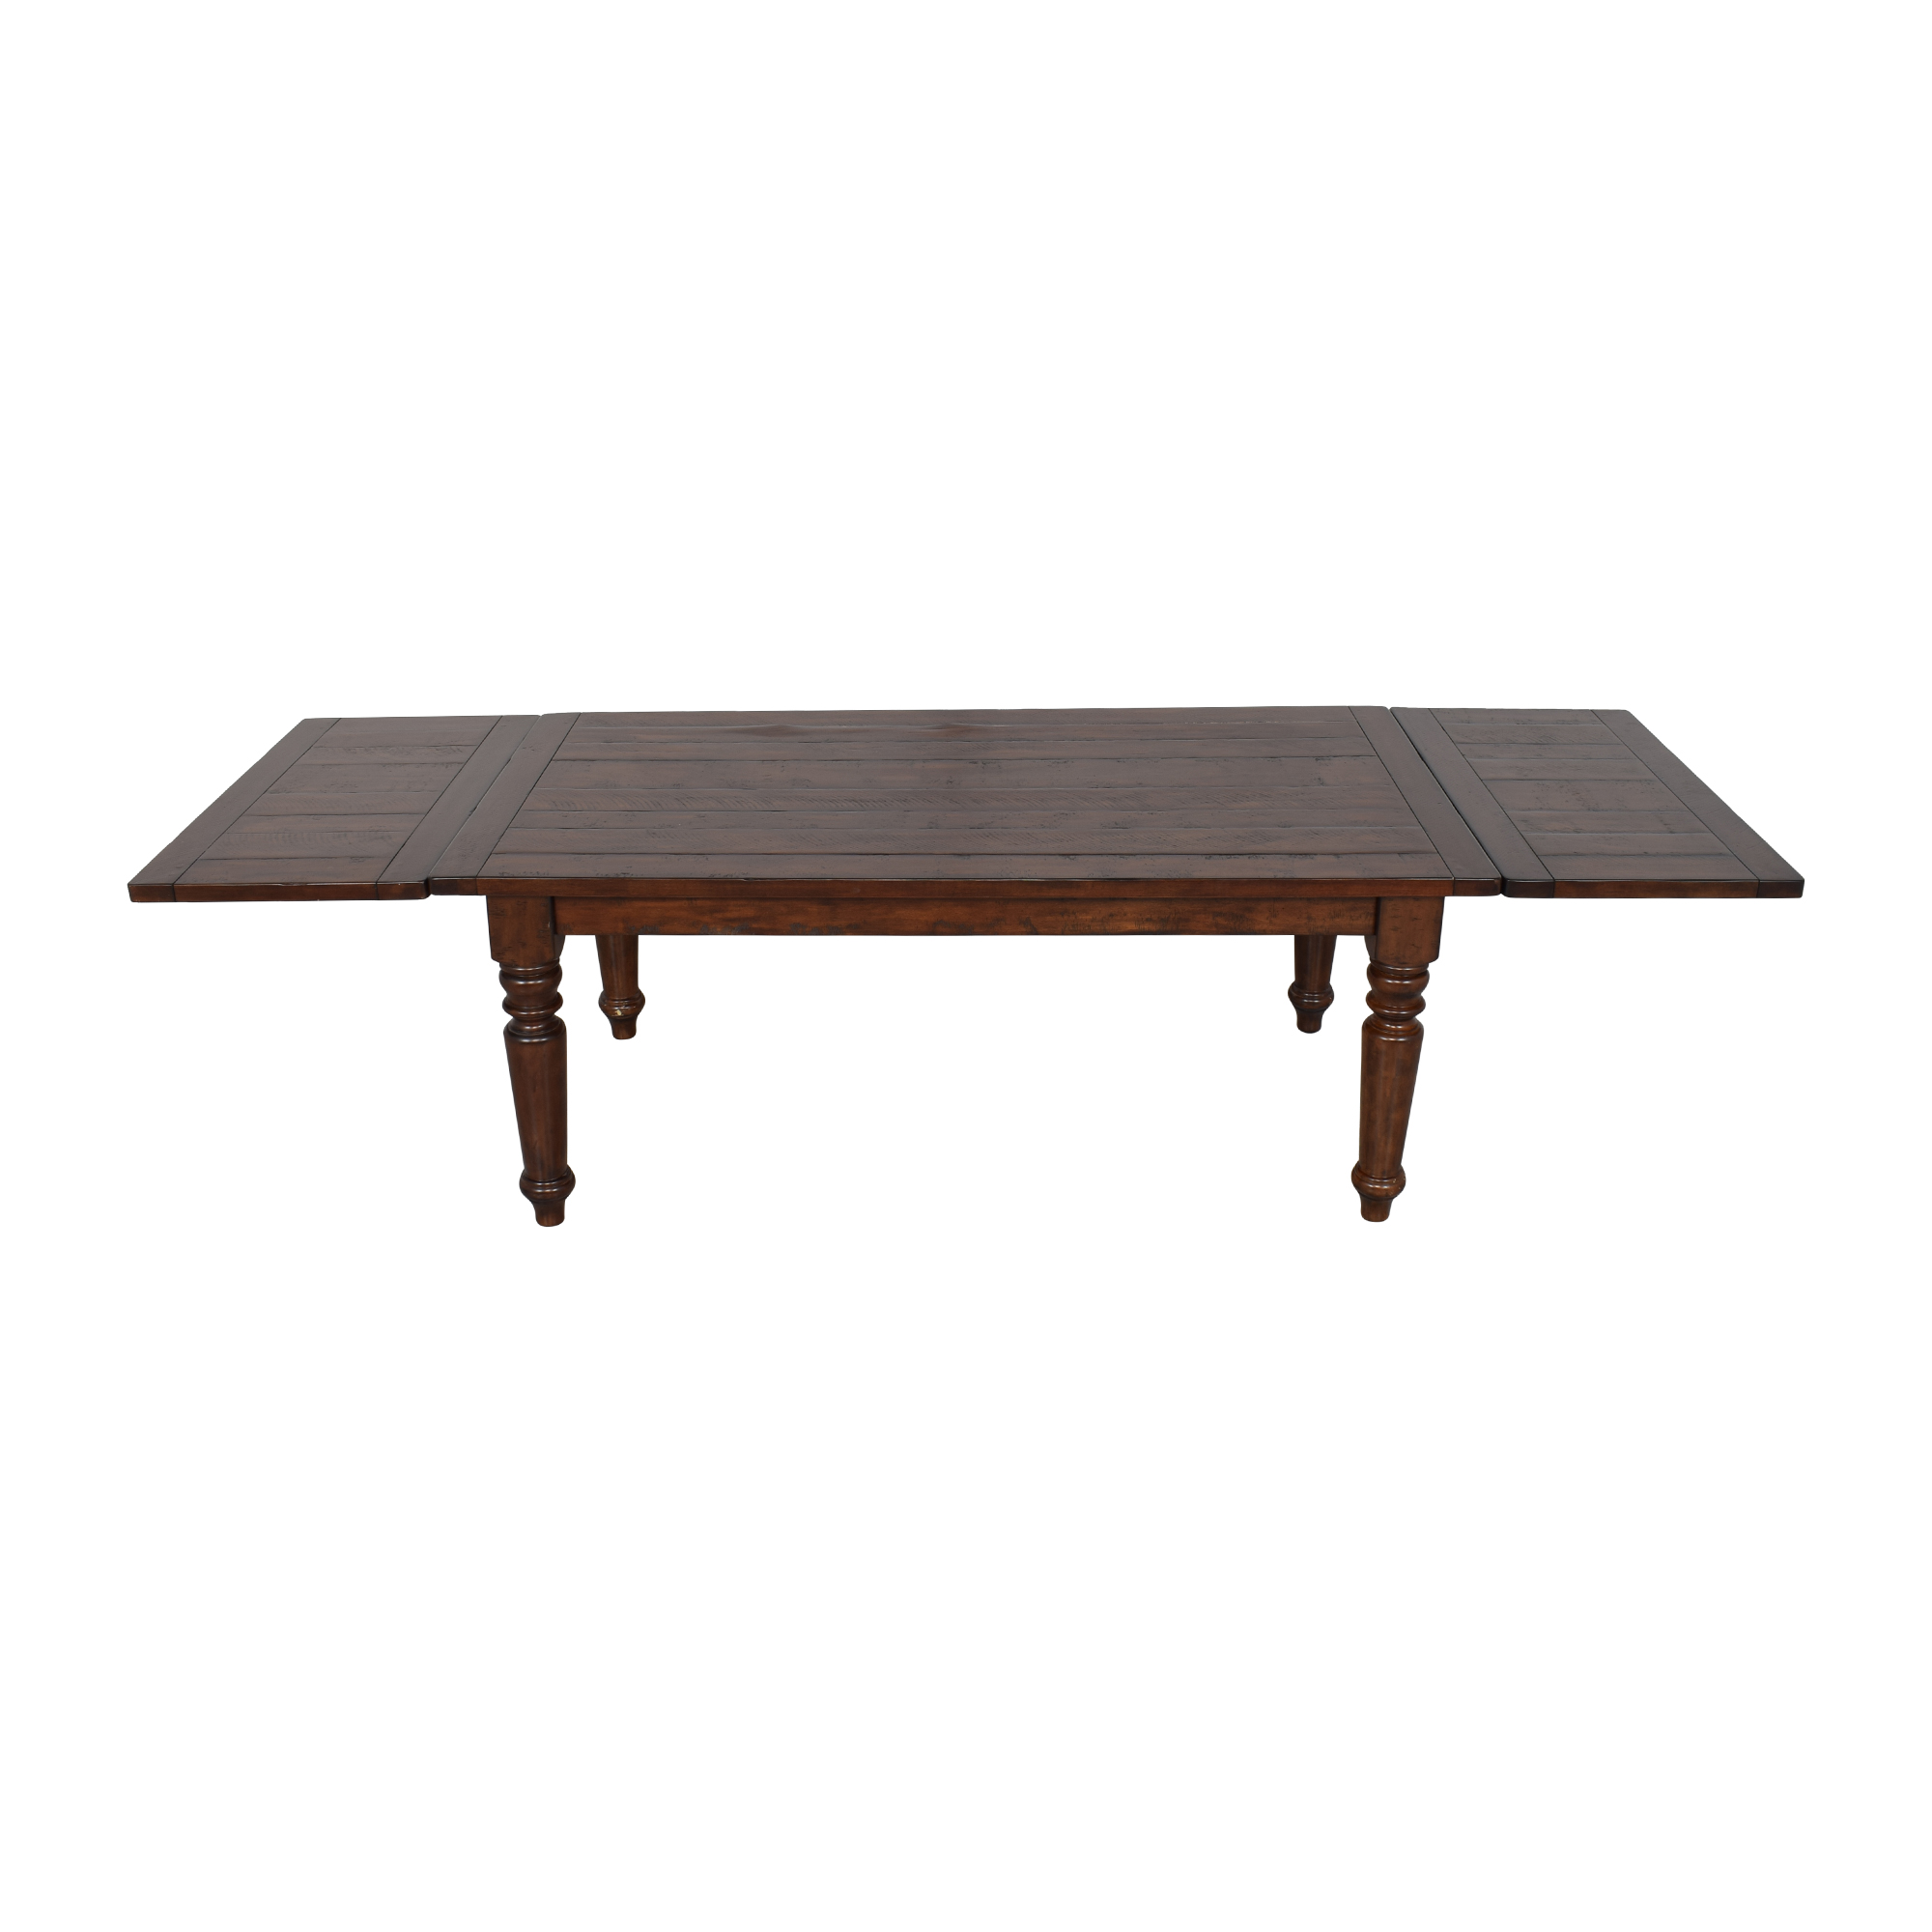 Pottery Barn Pottery Barn Sumner Extending Dining Table coupon